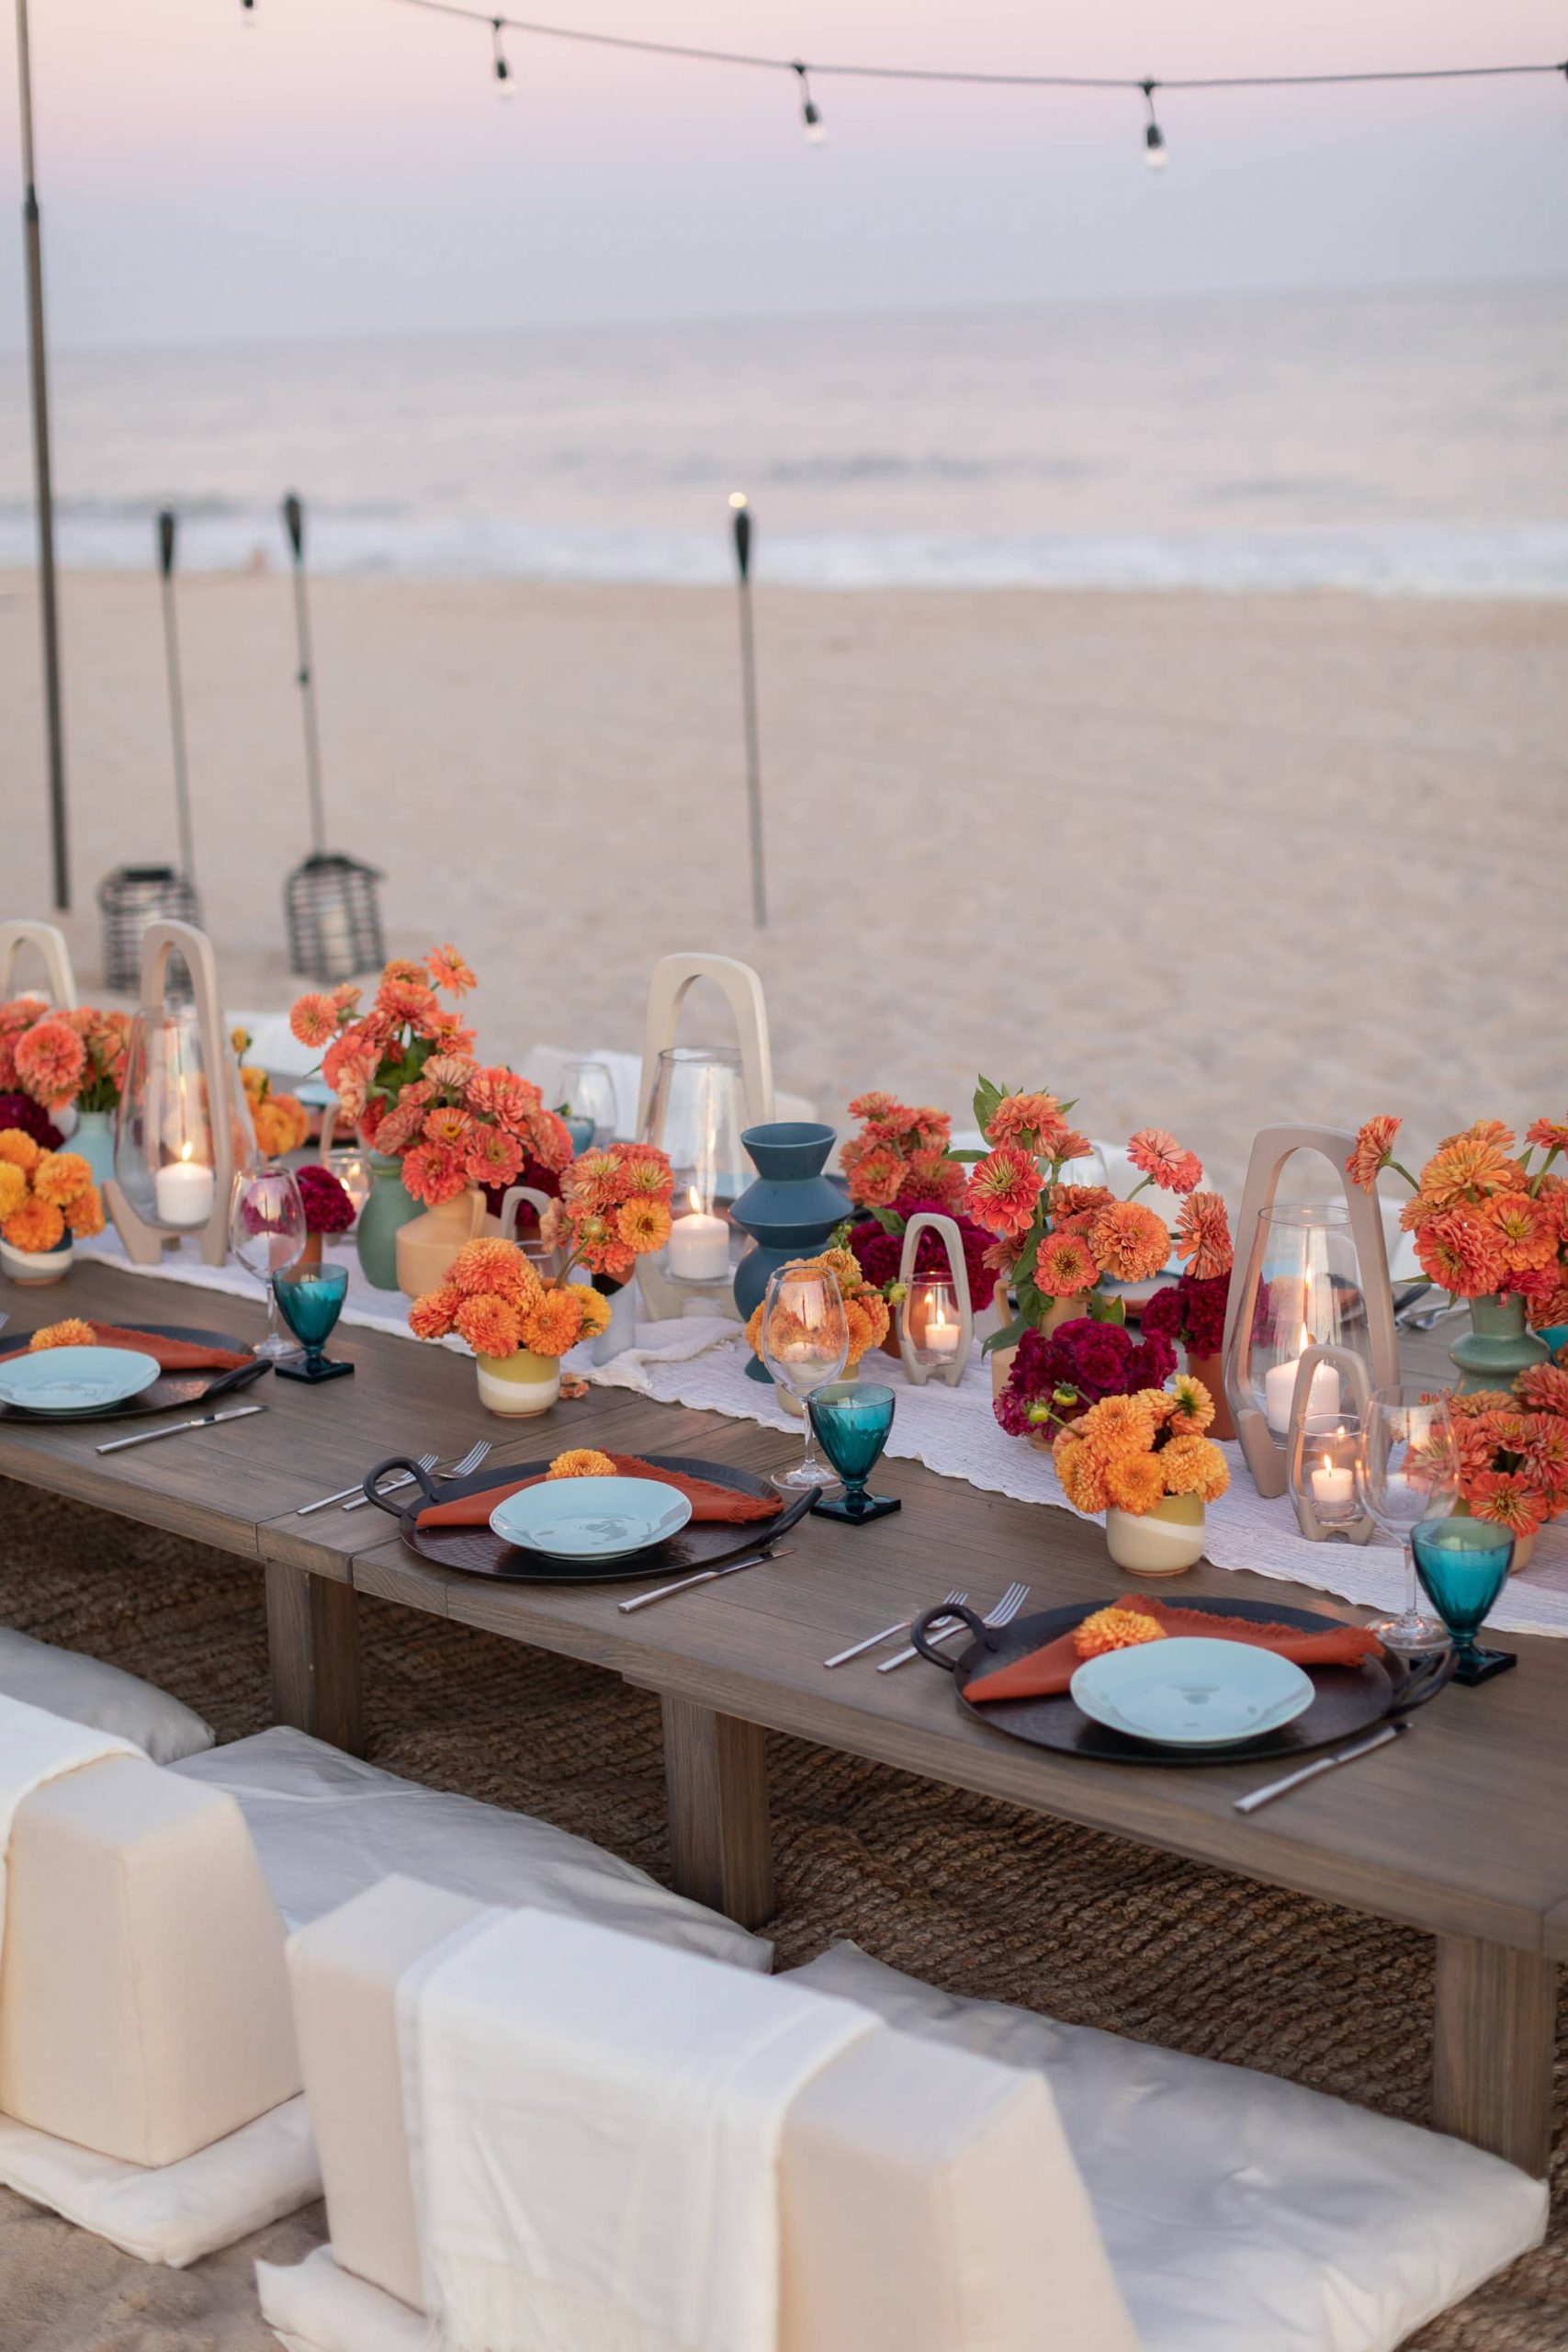 Table decor at 40th birthday dinner on the beach in Southampton | Photo by Luis Zepeda